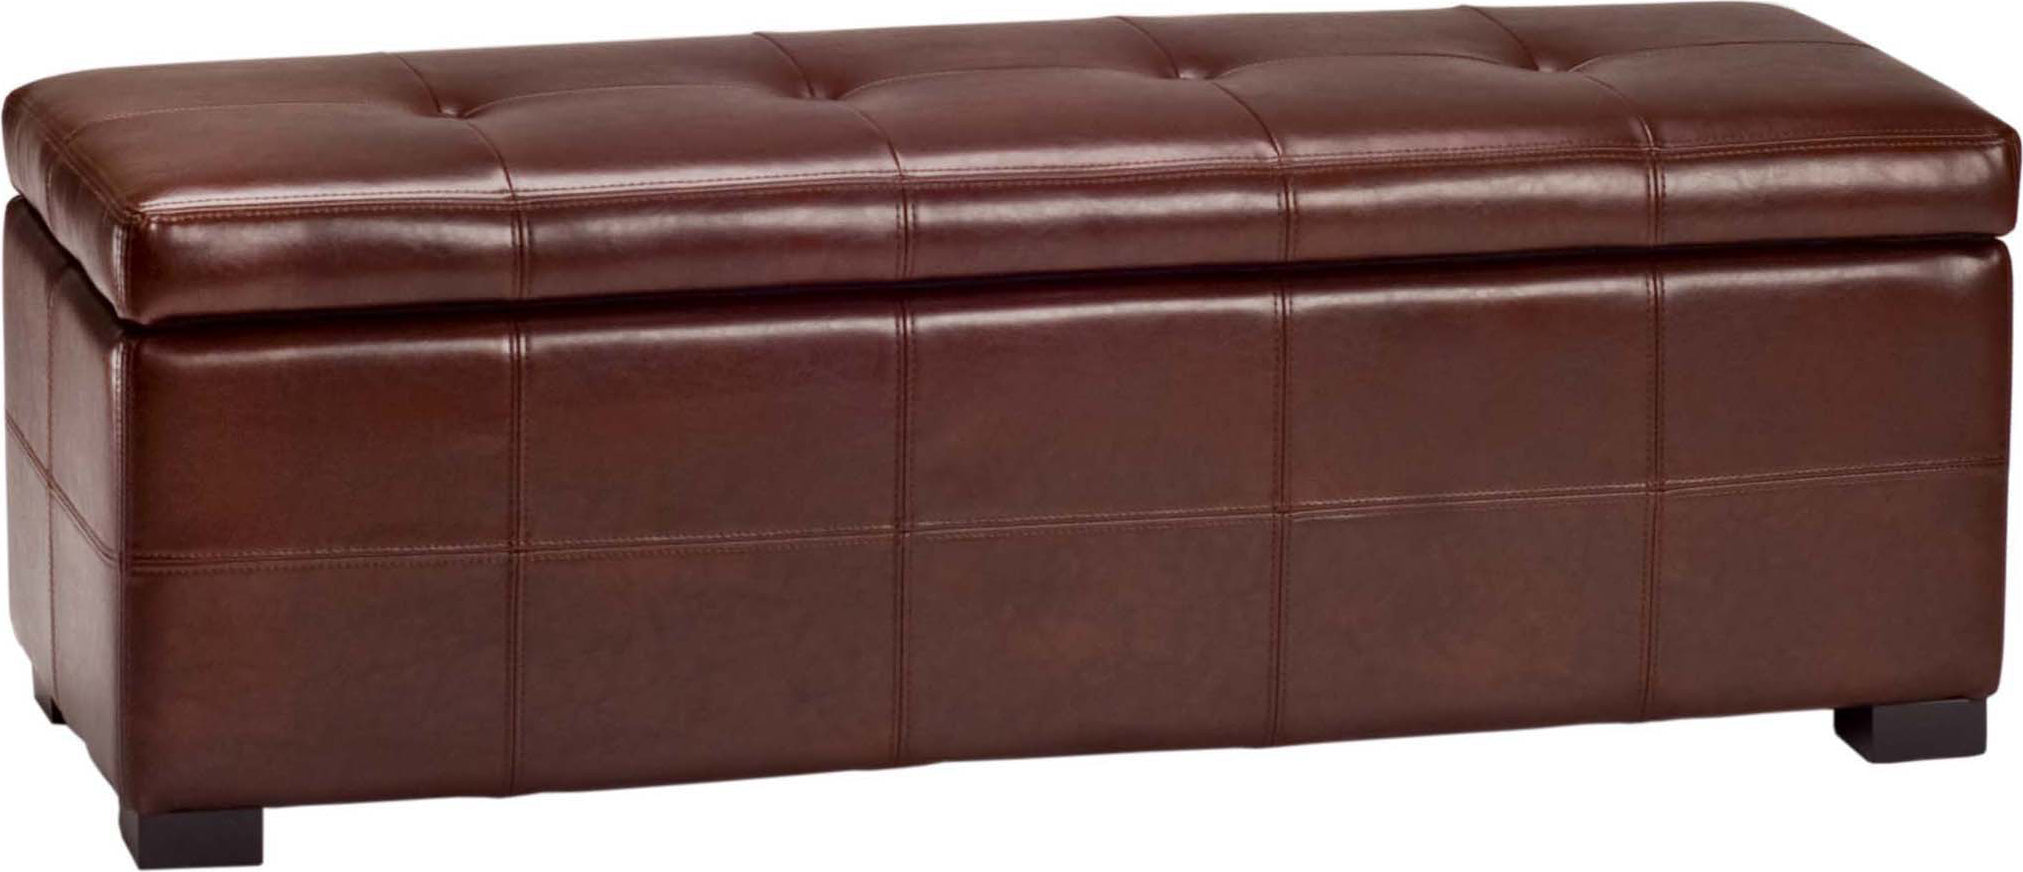 Safavieh Maiden Tufted Storage Bench Lg Cordovan and Black Furniture main image